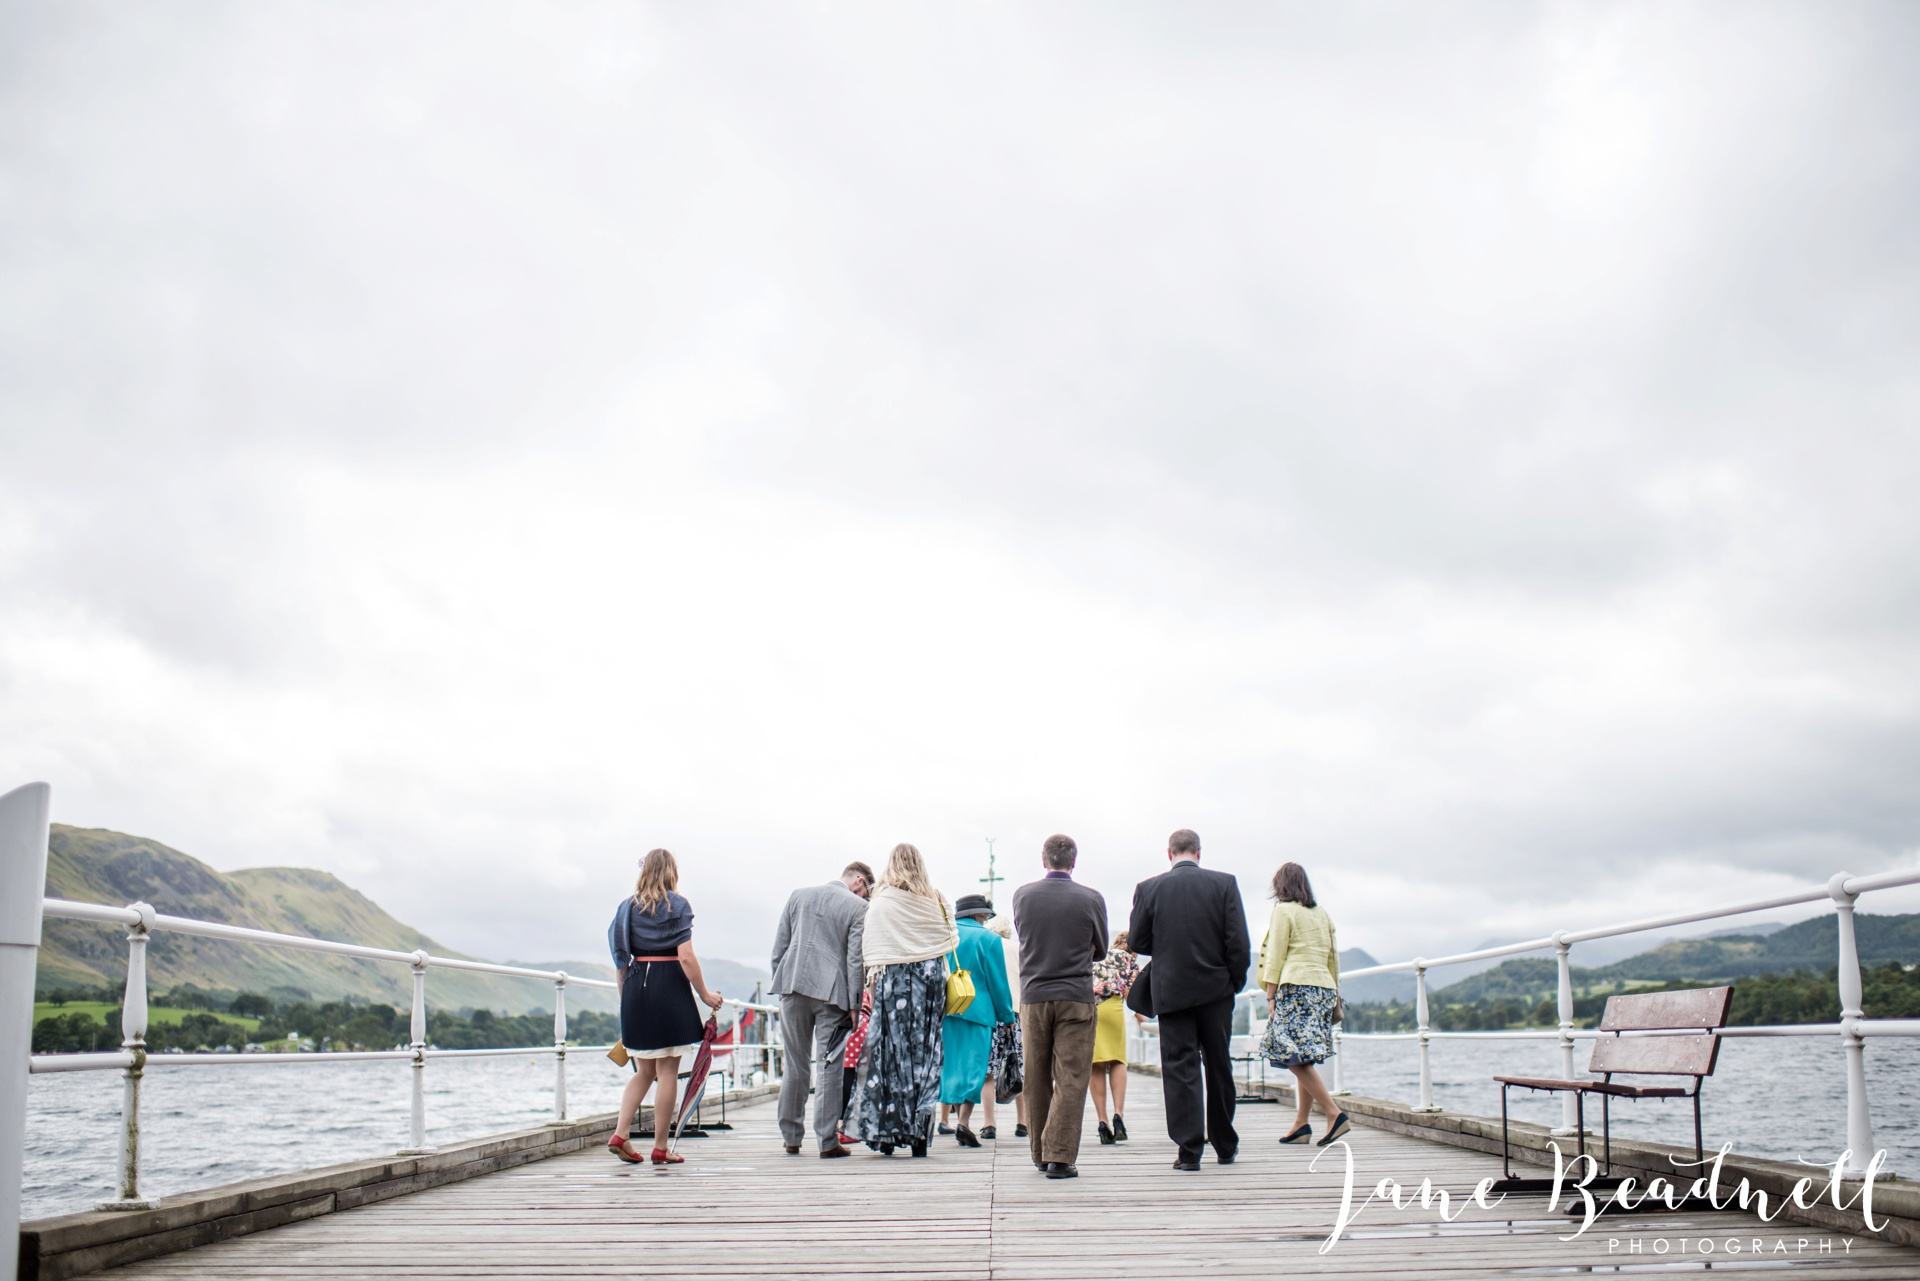 Jane Beadnell fine art wedding photographer Lake Ullswater Lake District_0006